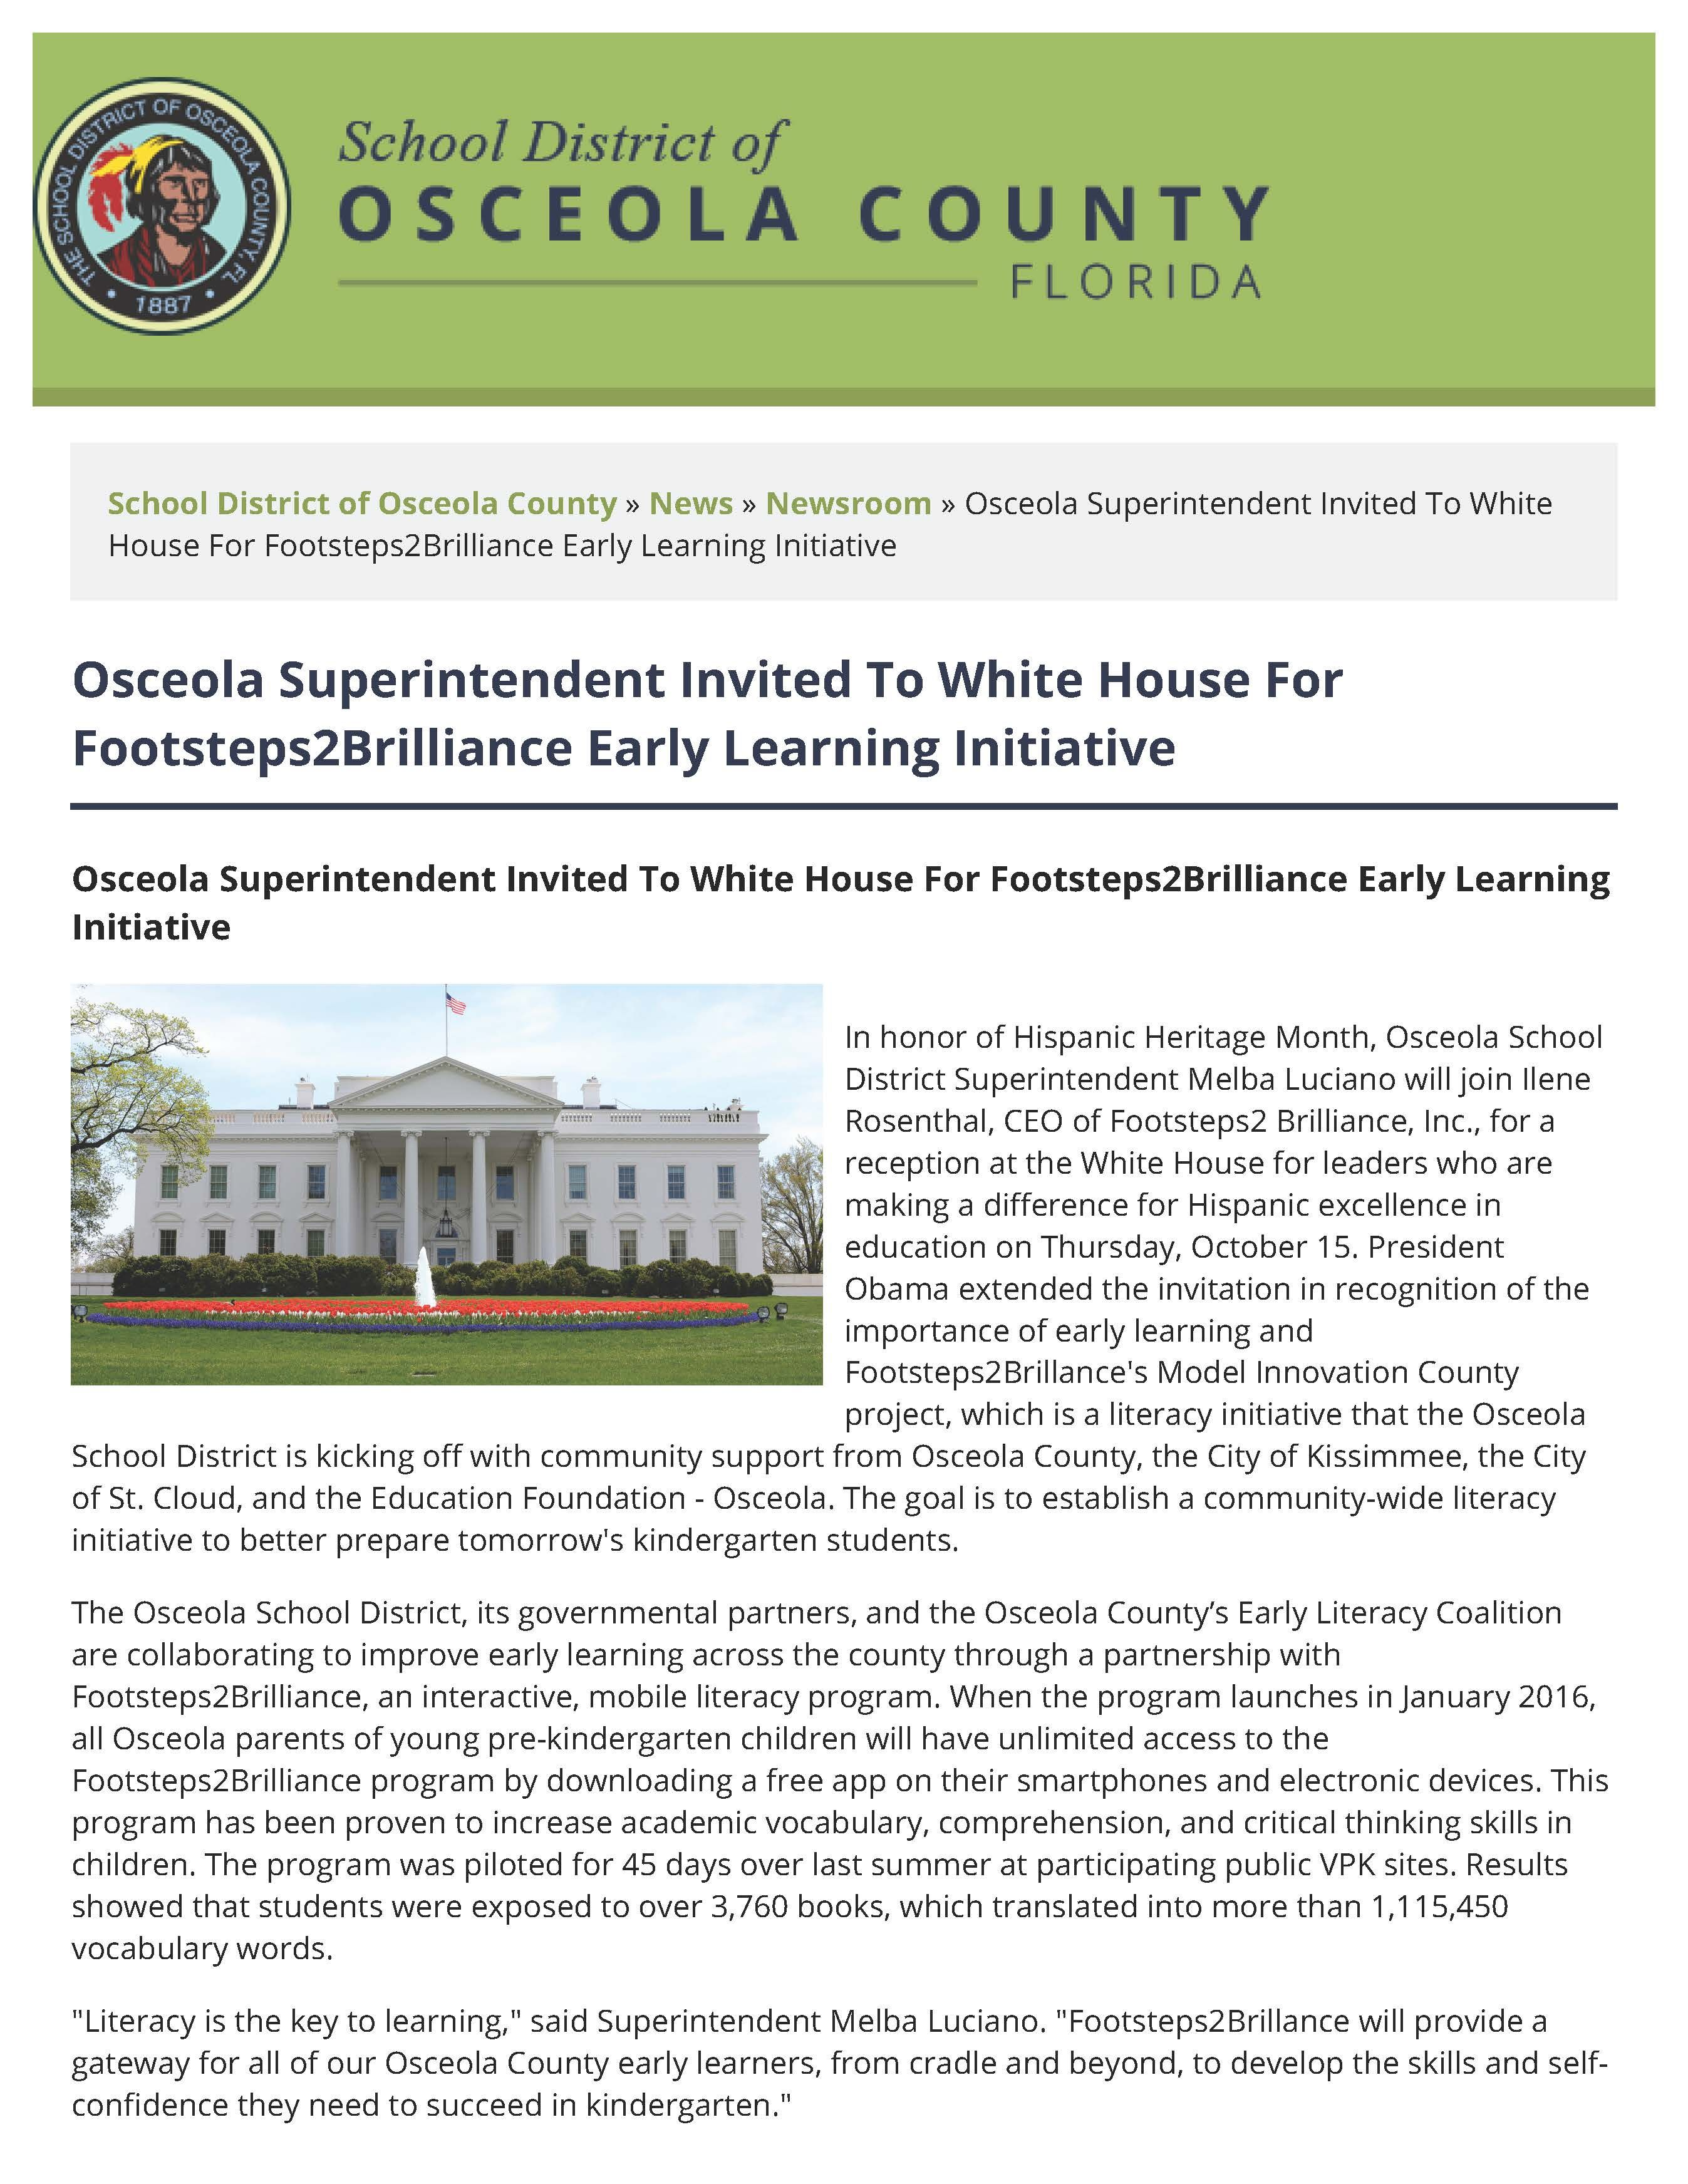 Osceola Superintendent Invited To White House For